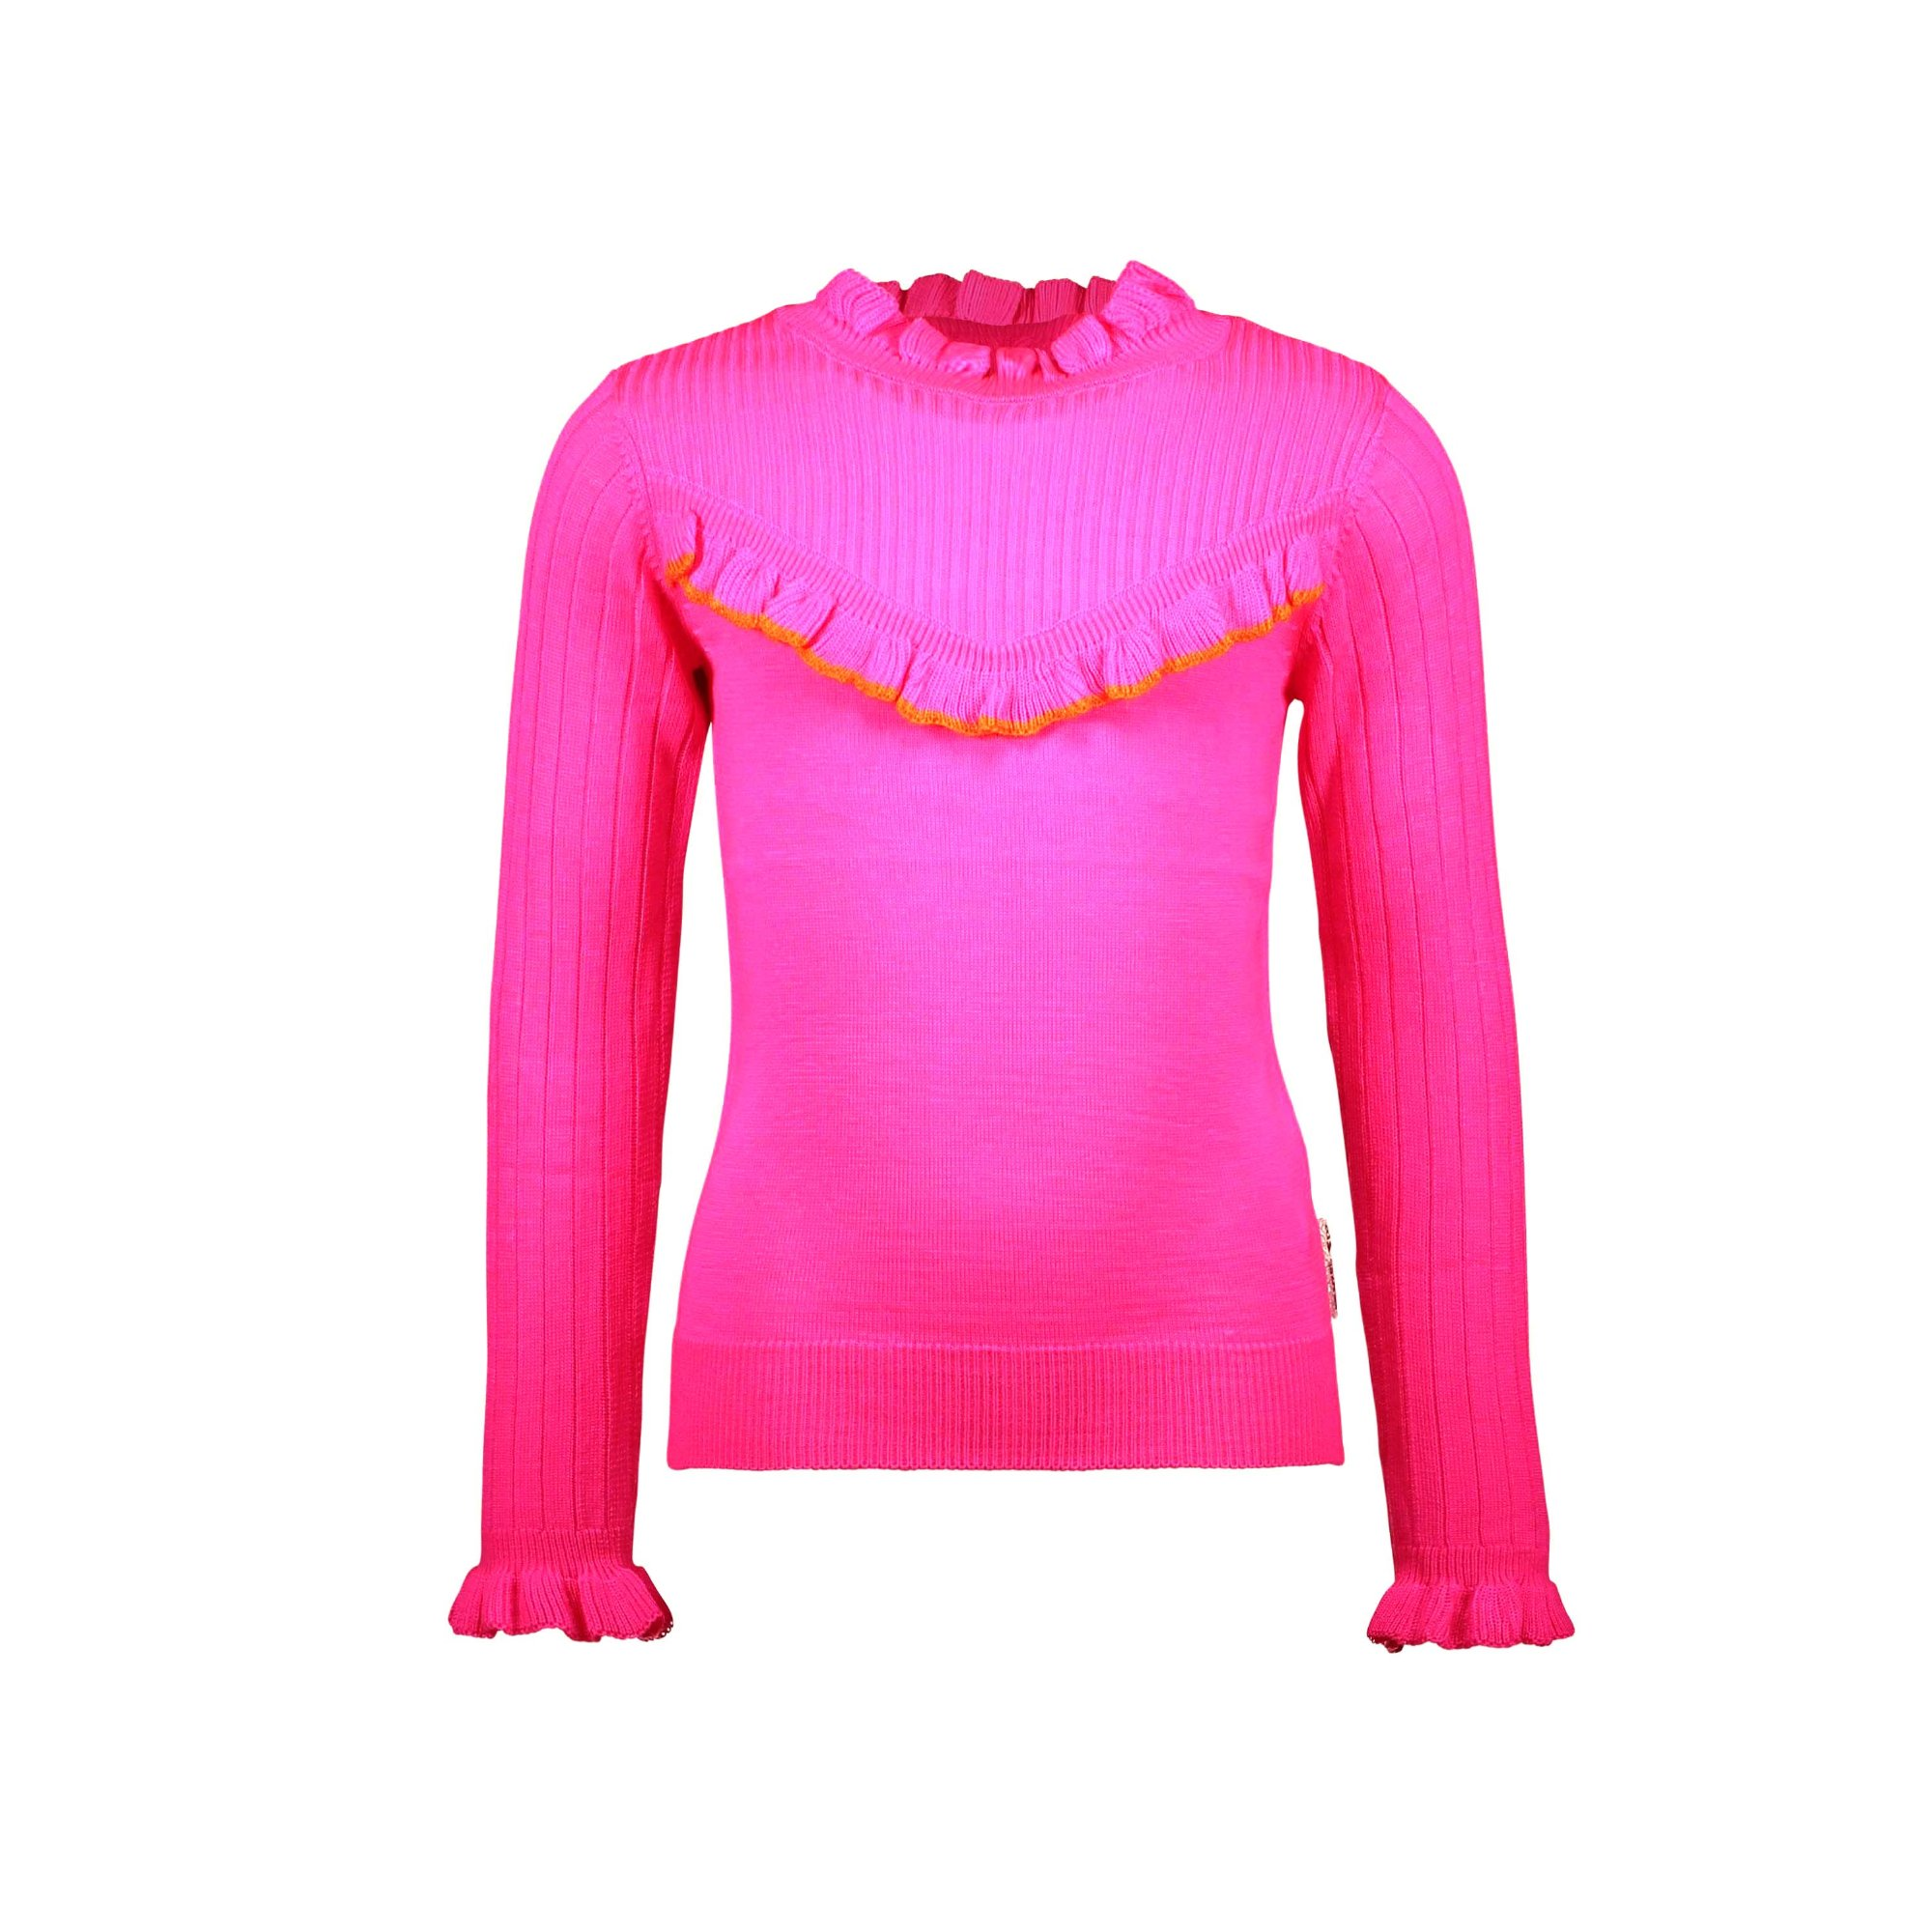 Y008-5332_275 Sweater Pink glo